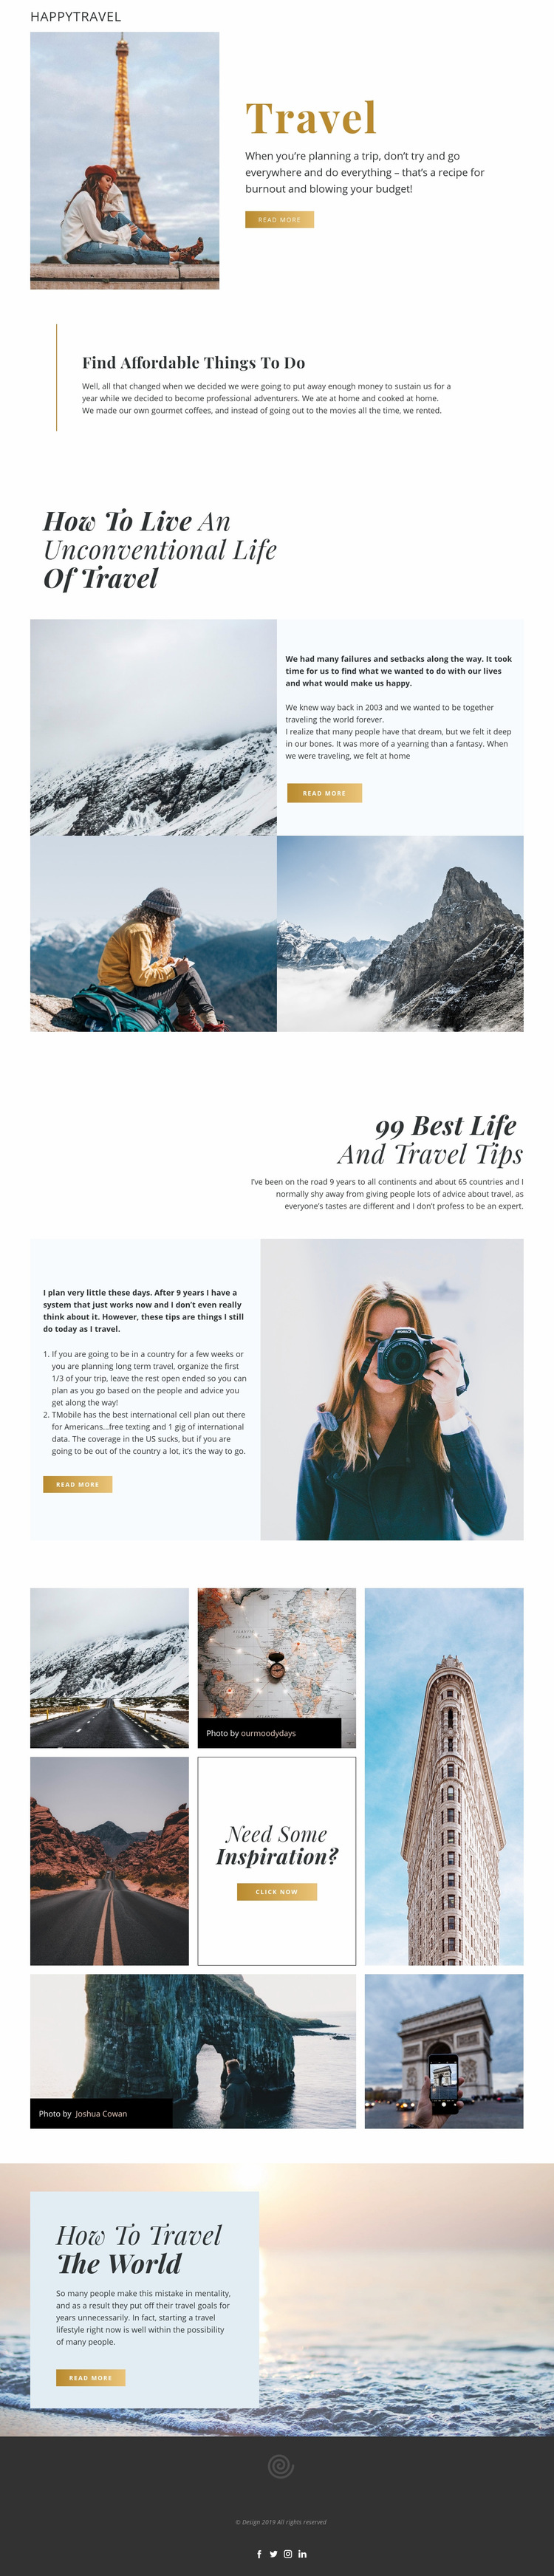 Travel Live Web Page Design